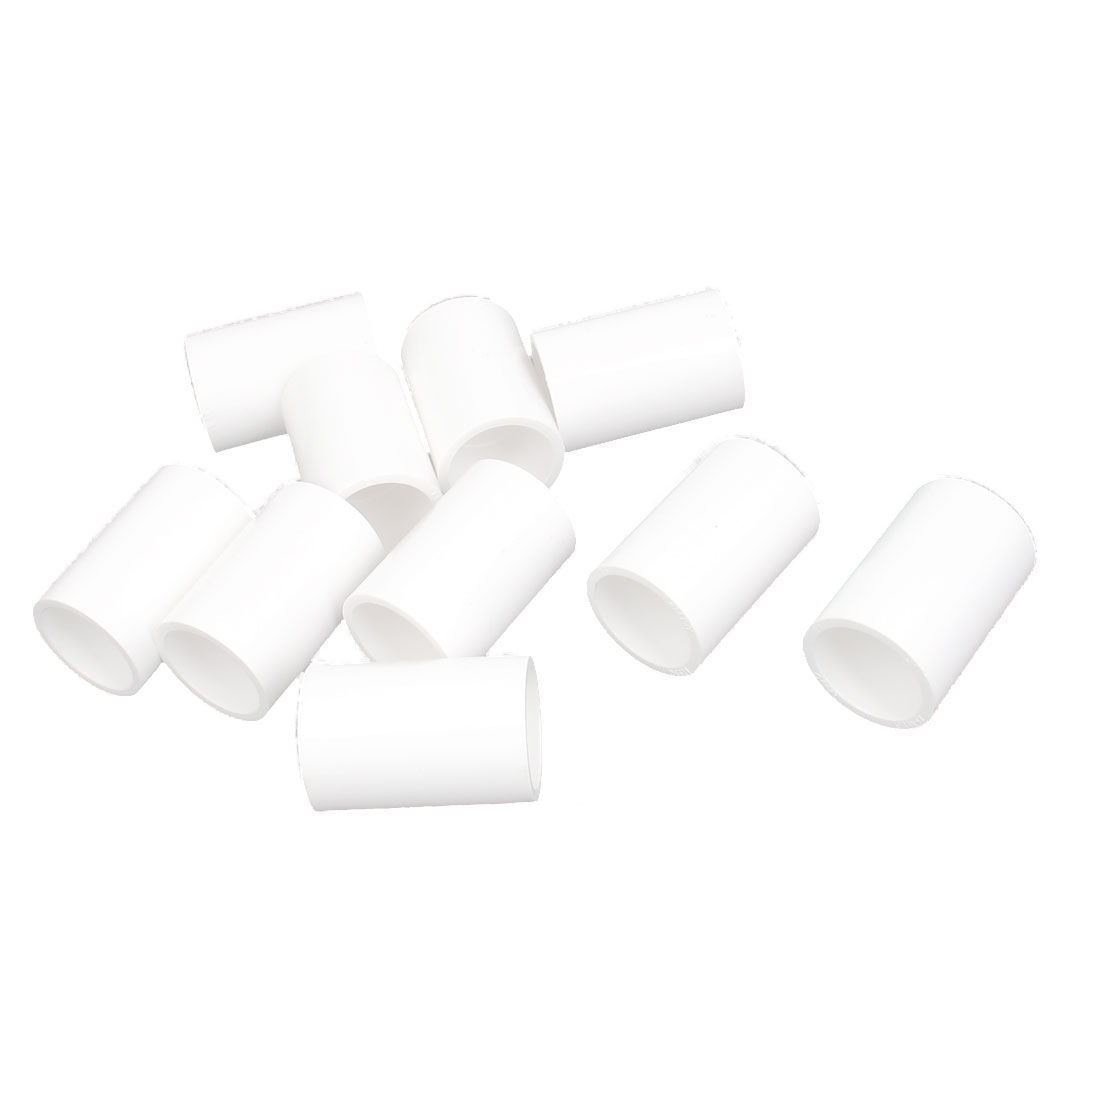 25mm Inner Dia PVC Straight Design Water Pipe Hose Joint Adapter Connector White 10pcs